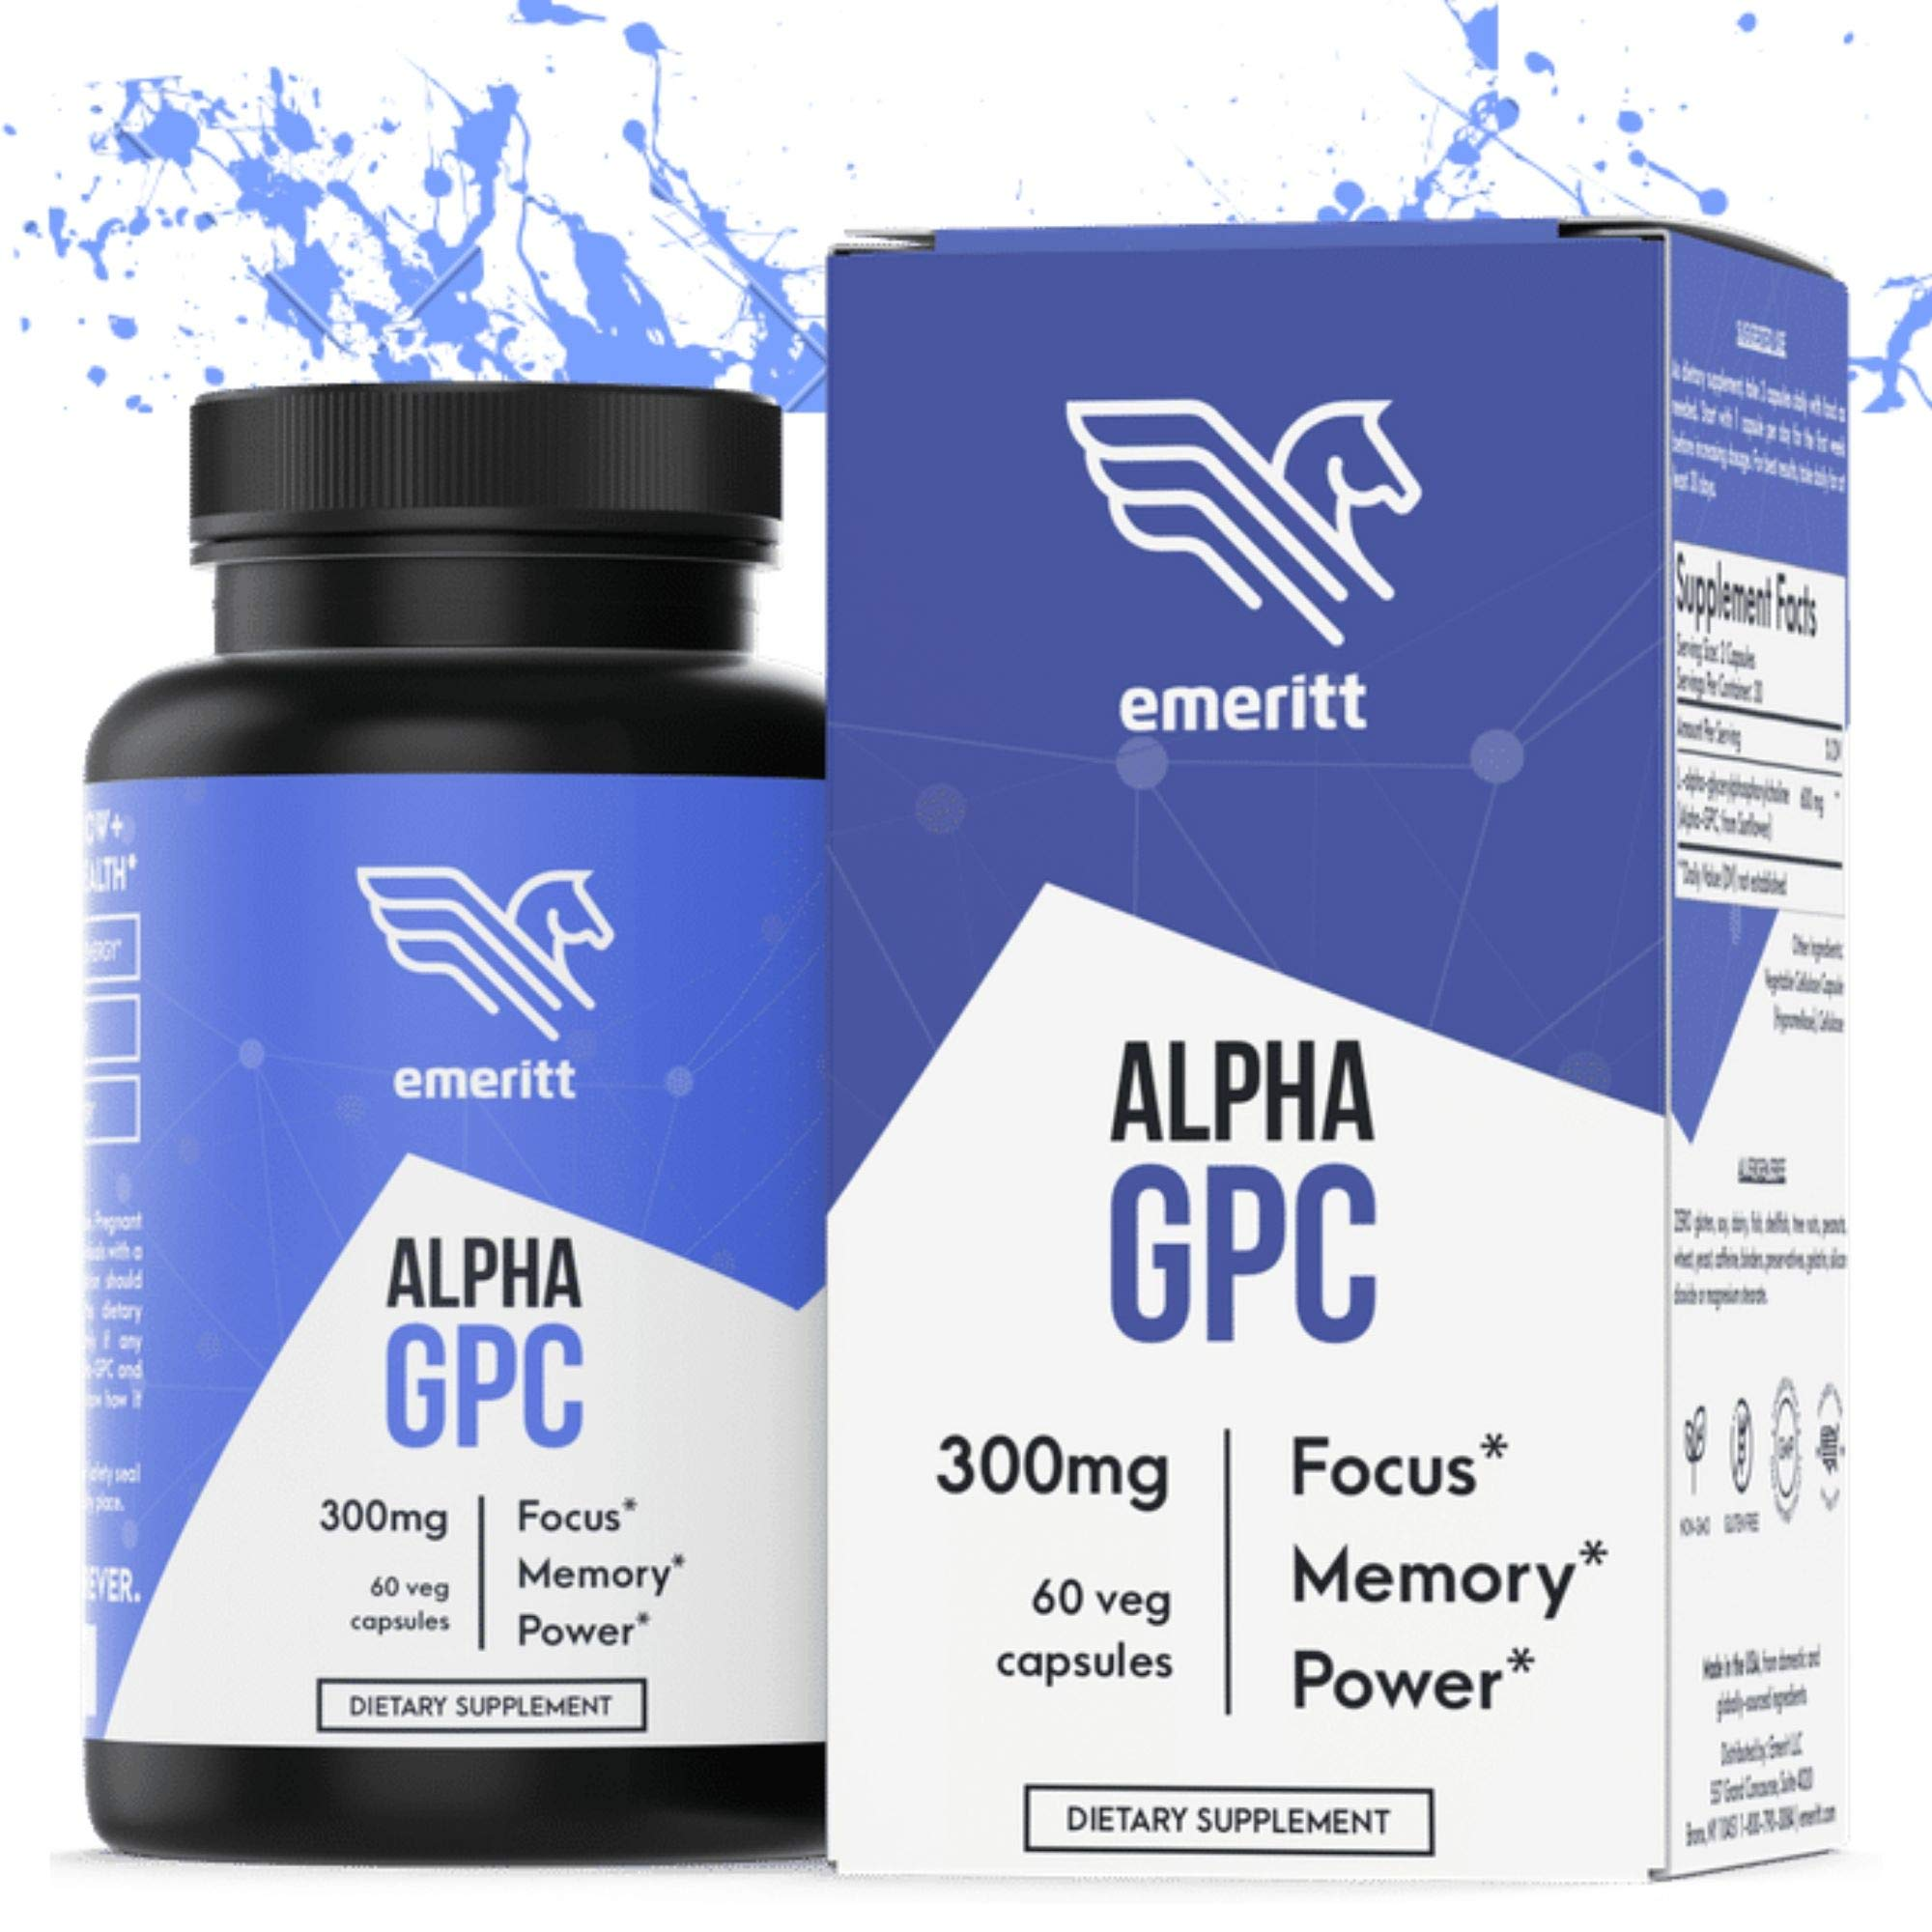 Alpha GPC Premium Choline Supplement | Brain Nootropic from Pure Sunflower Lecithin for Brain Support, Enhanced Focus and Memory | Vegan, Non GMO, No Soy, Pharmaceutical Grade | 600 mg 30 Servings by Emeritt